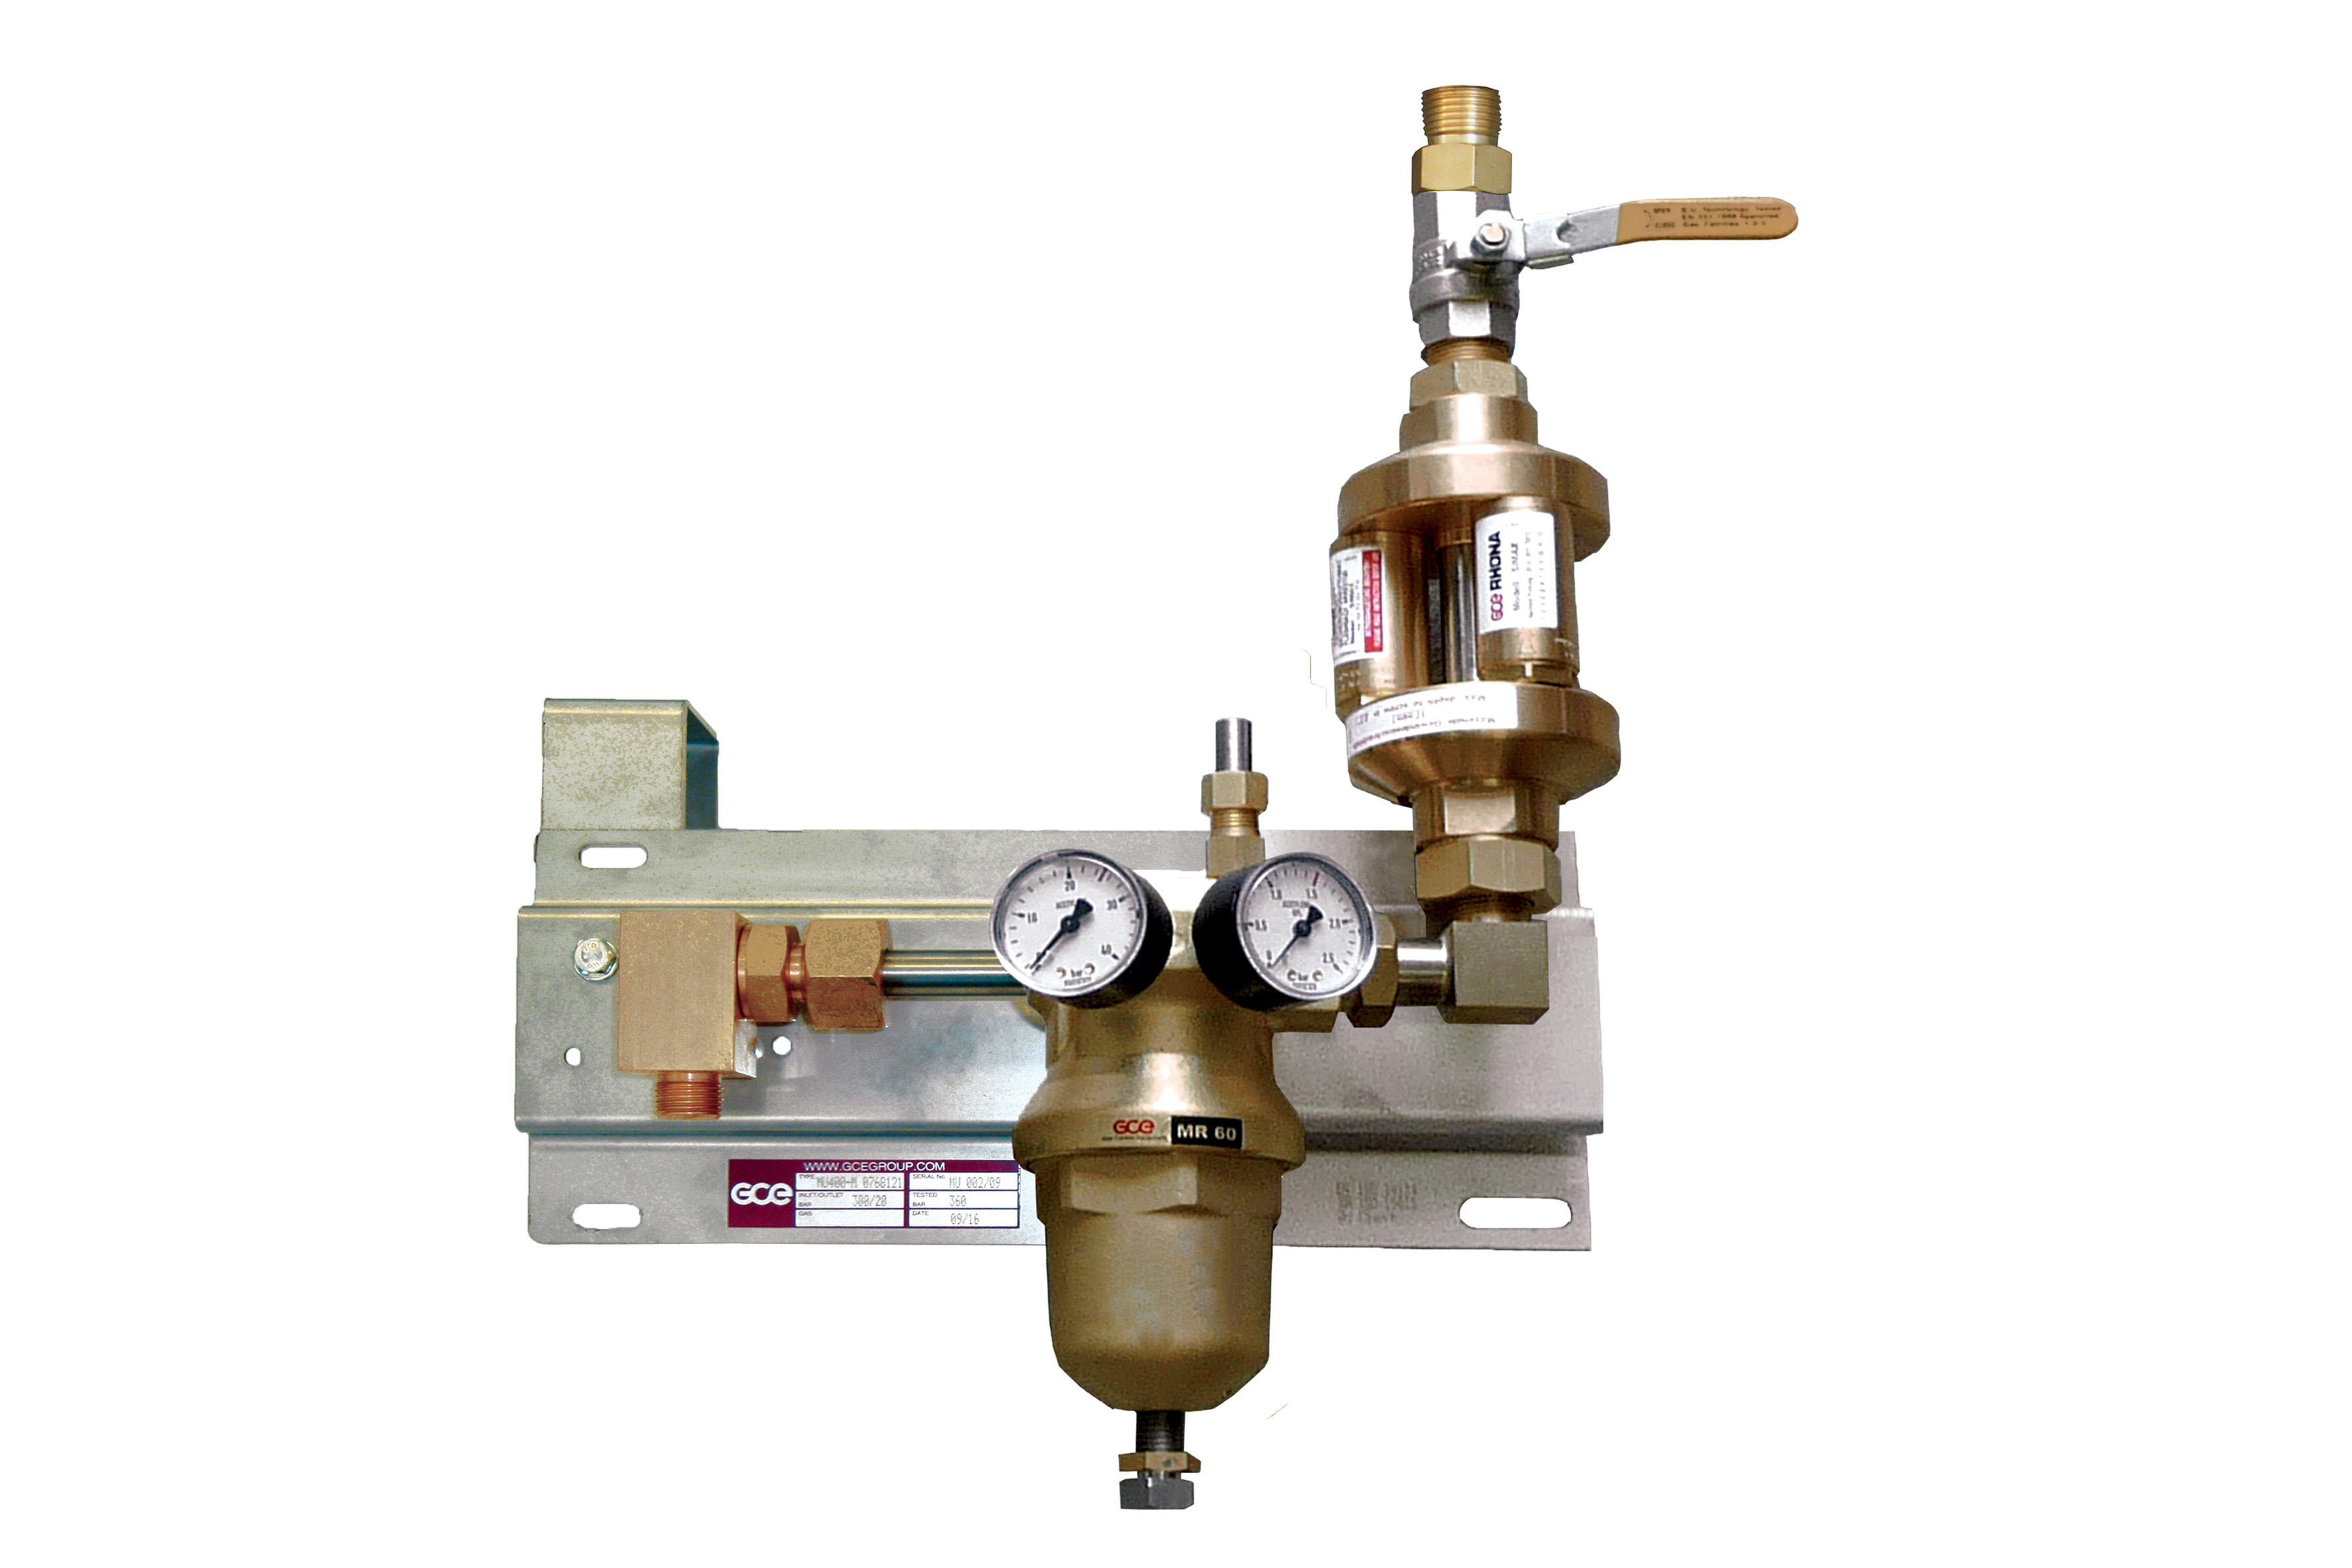 High Pressure Manifold : Mu from gce group leading manufacturer of gas flow